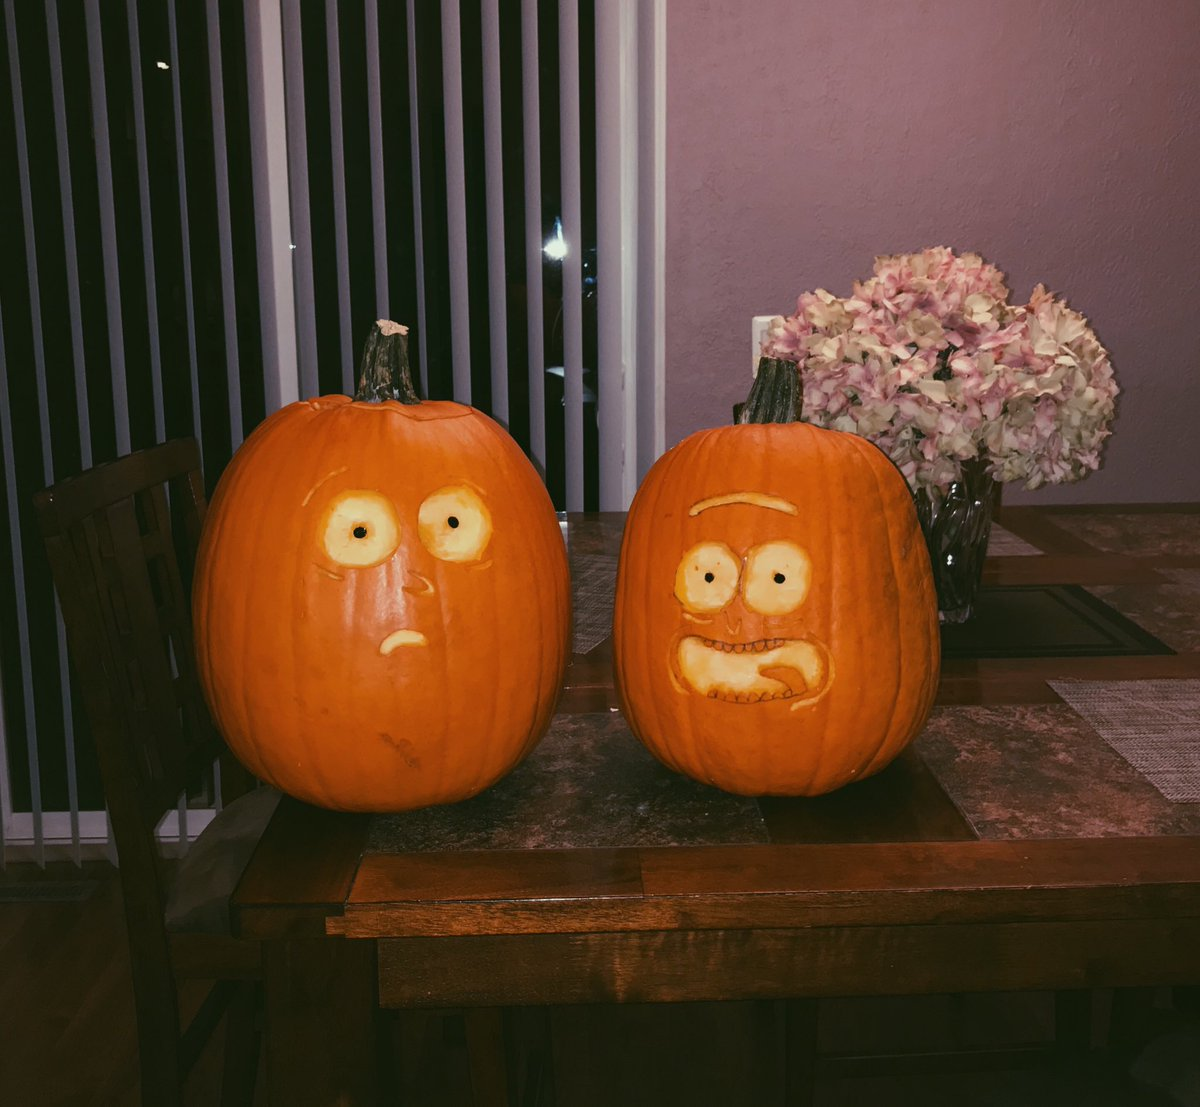 The Rick and Morty pumpkins